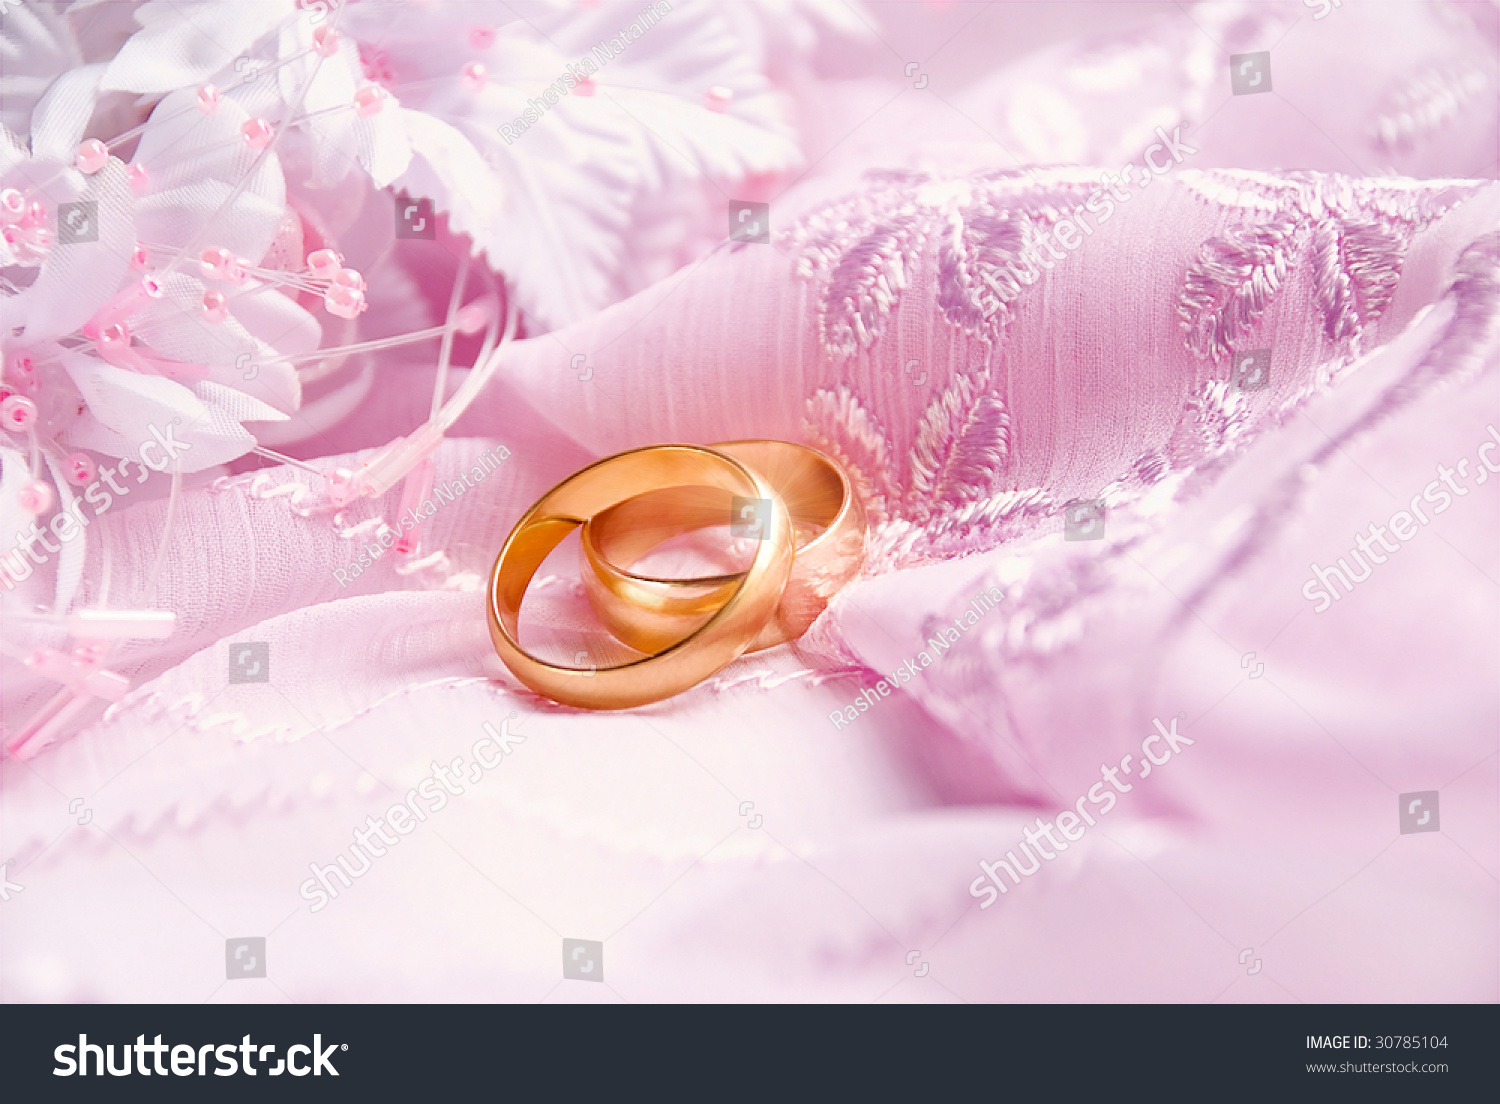 Wedding Background Pink Decoration Accessories Artificial Stock ...